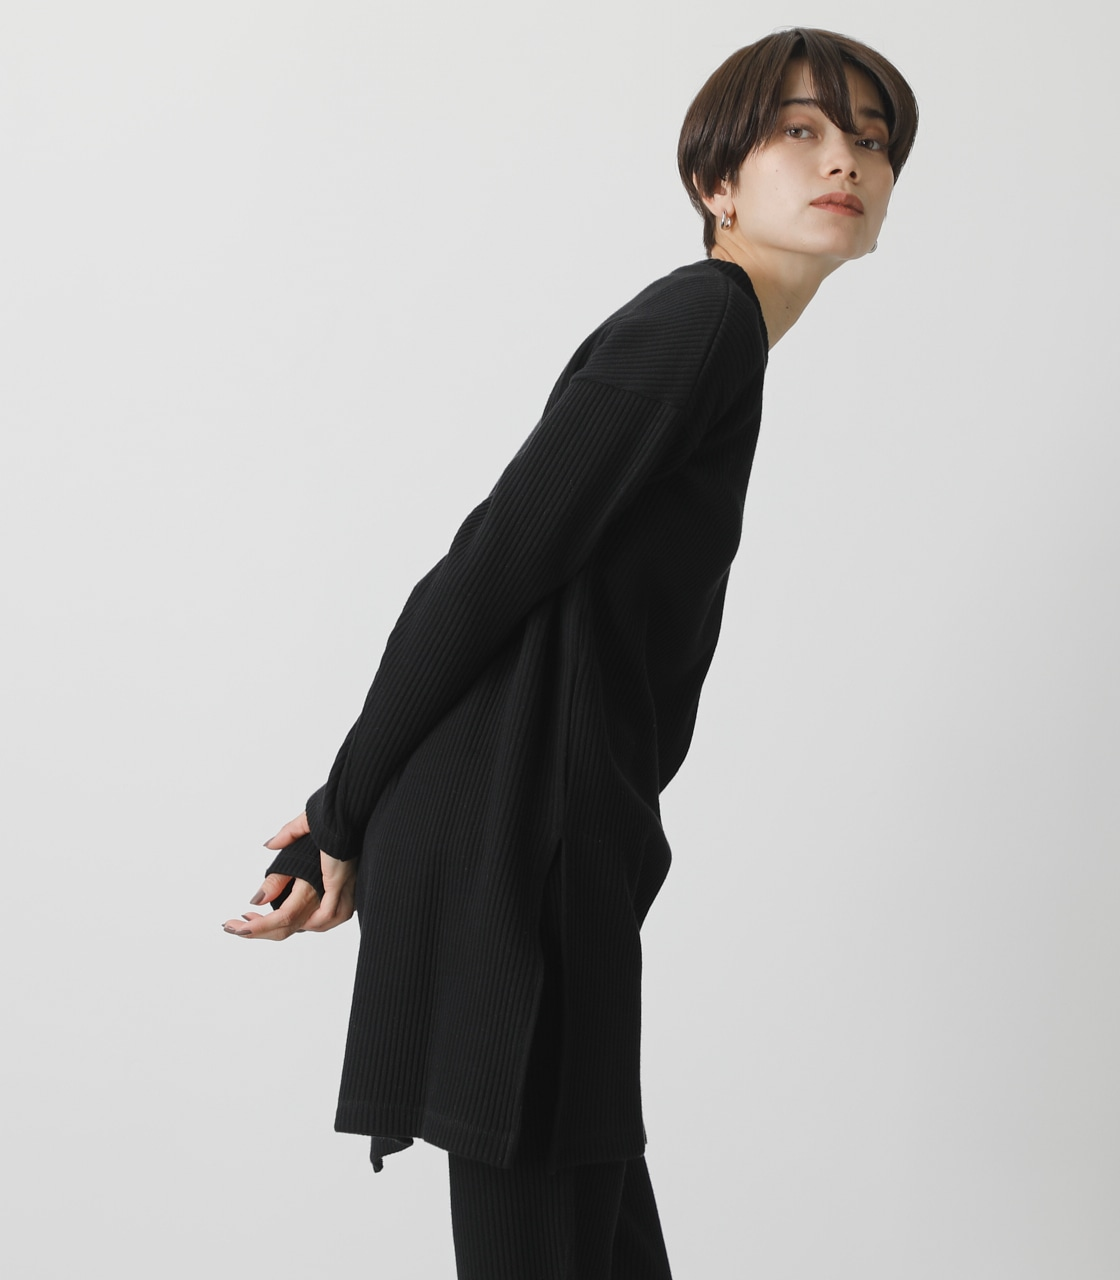 T/H SIDE SLIT LONG TOPS/T/Hサイドスリットロングトップス 詳細画像 BLK 2